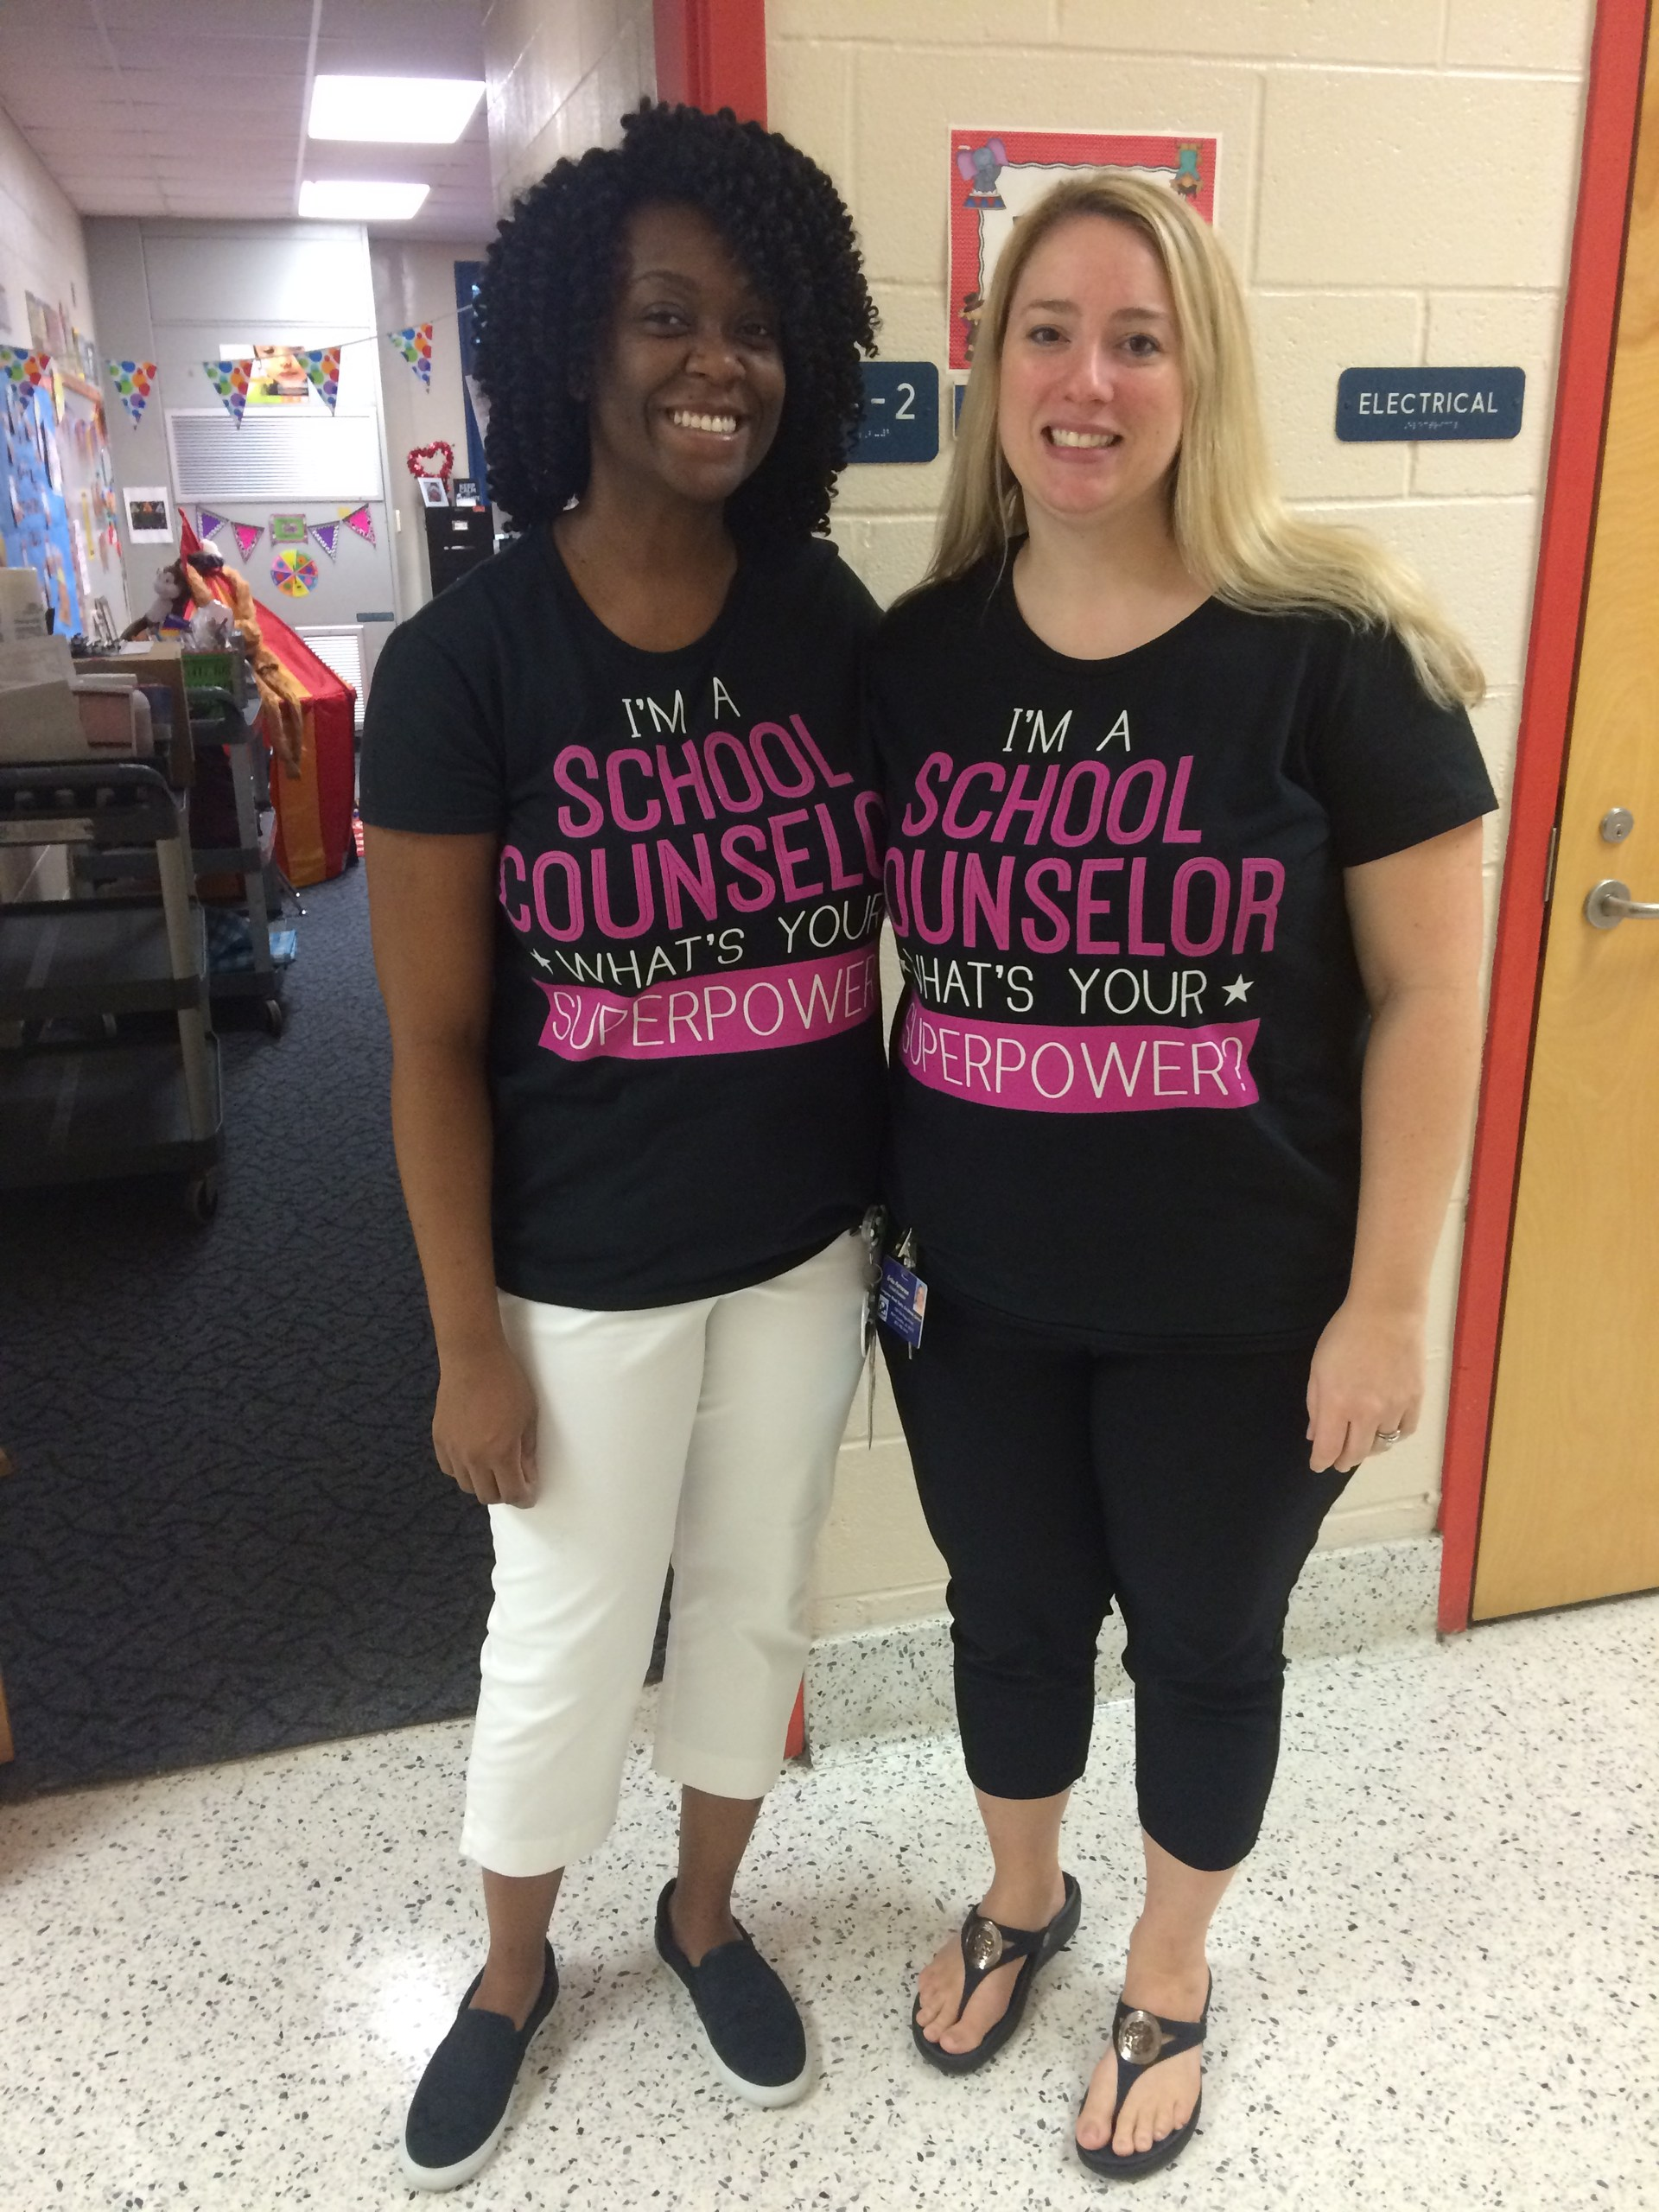 Ms. Doyle and Mrs. Patterson after presenting at a Parent Party event.